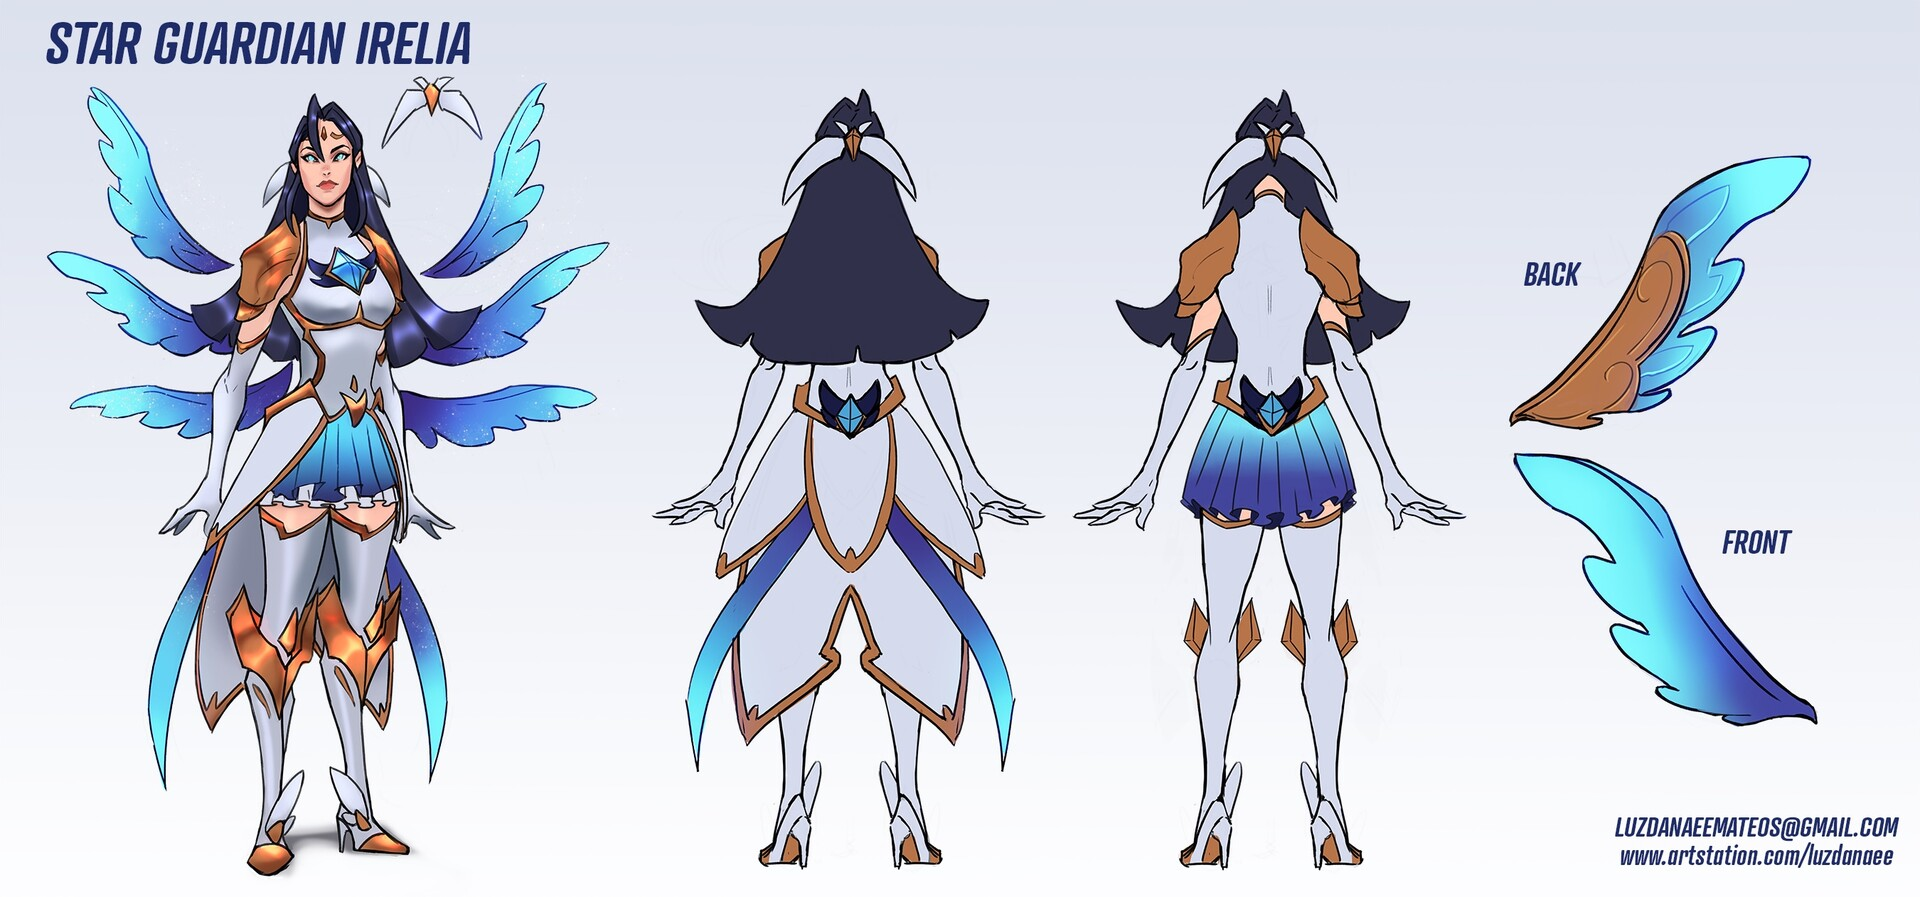 Star Guardian Irelia Final skin concept sheet